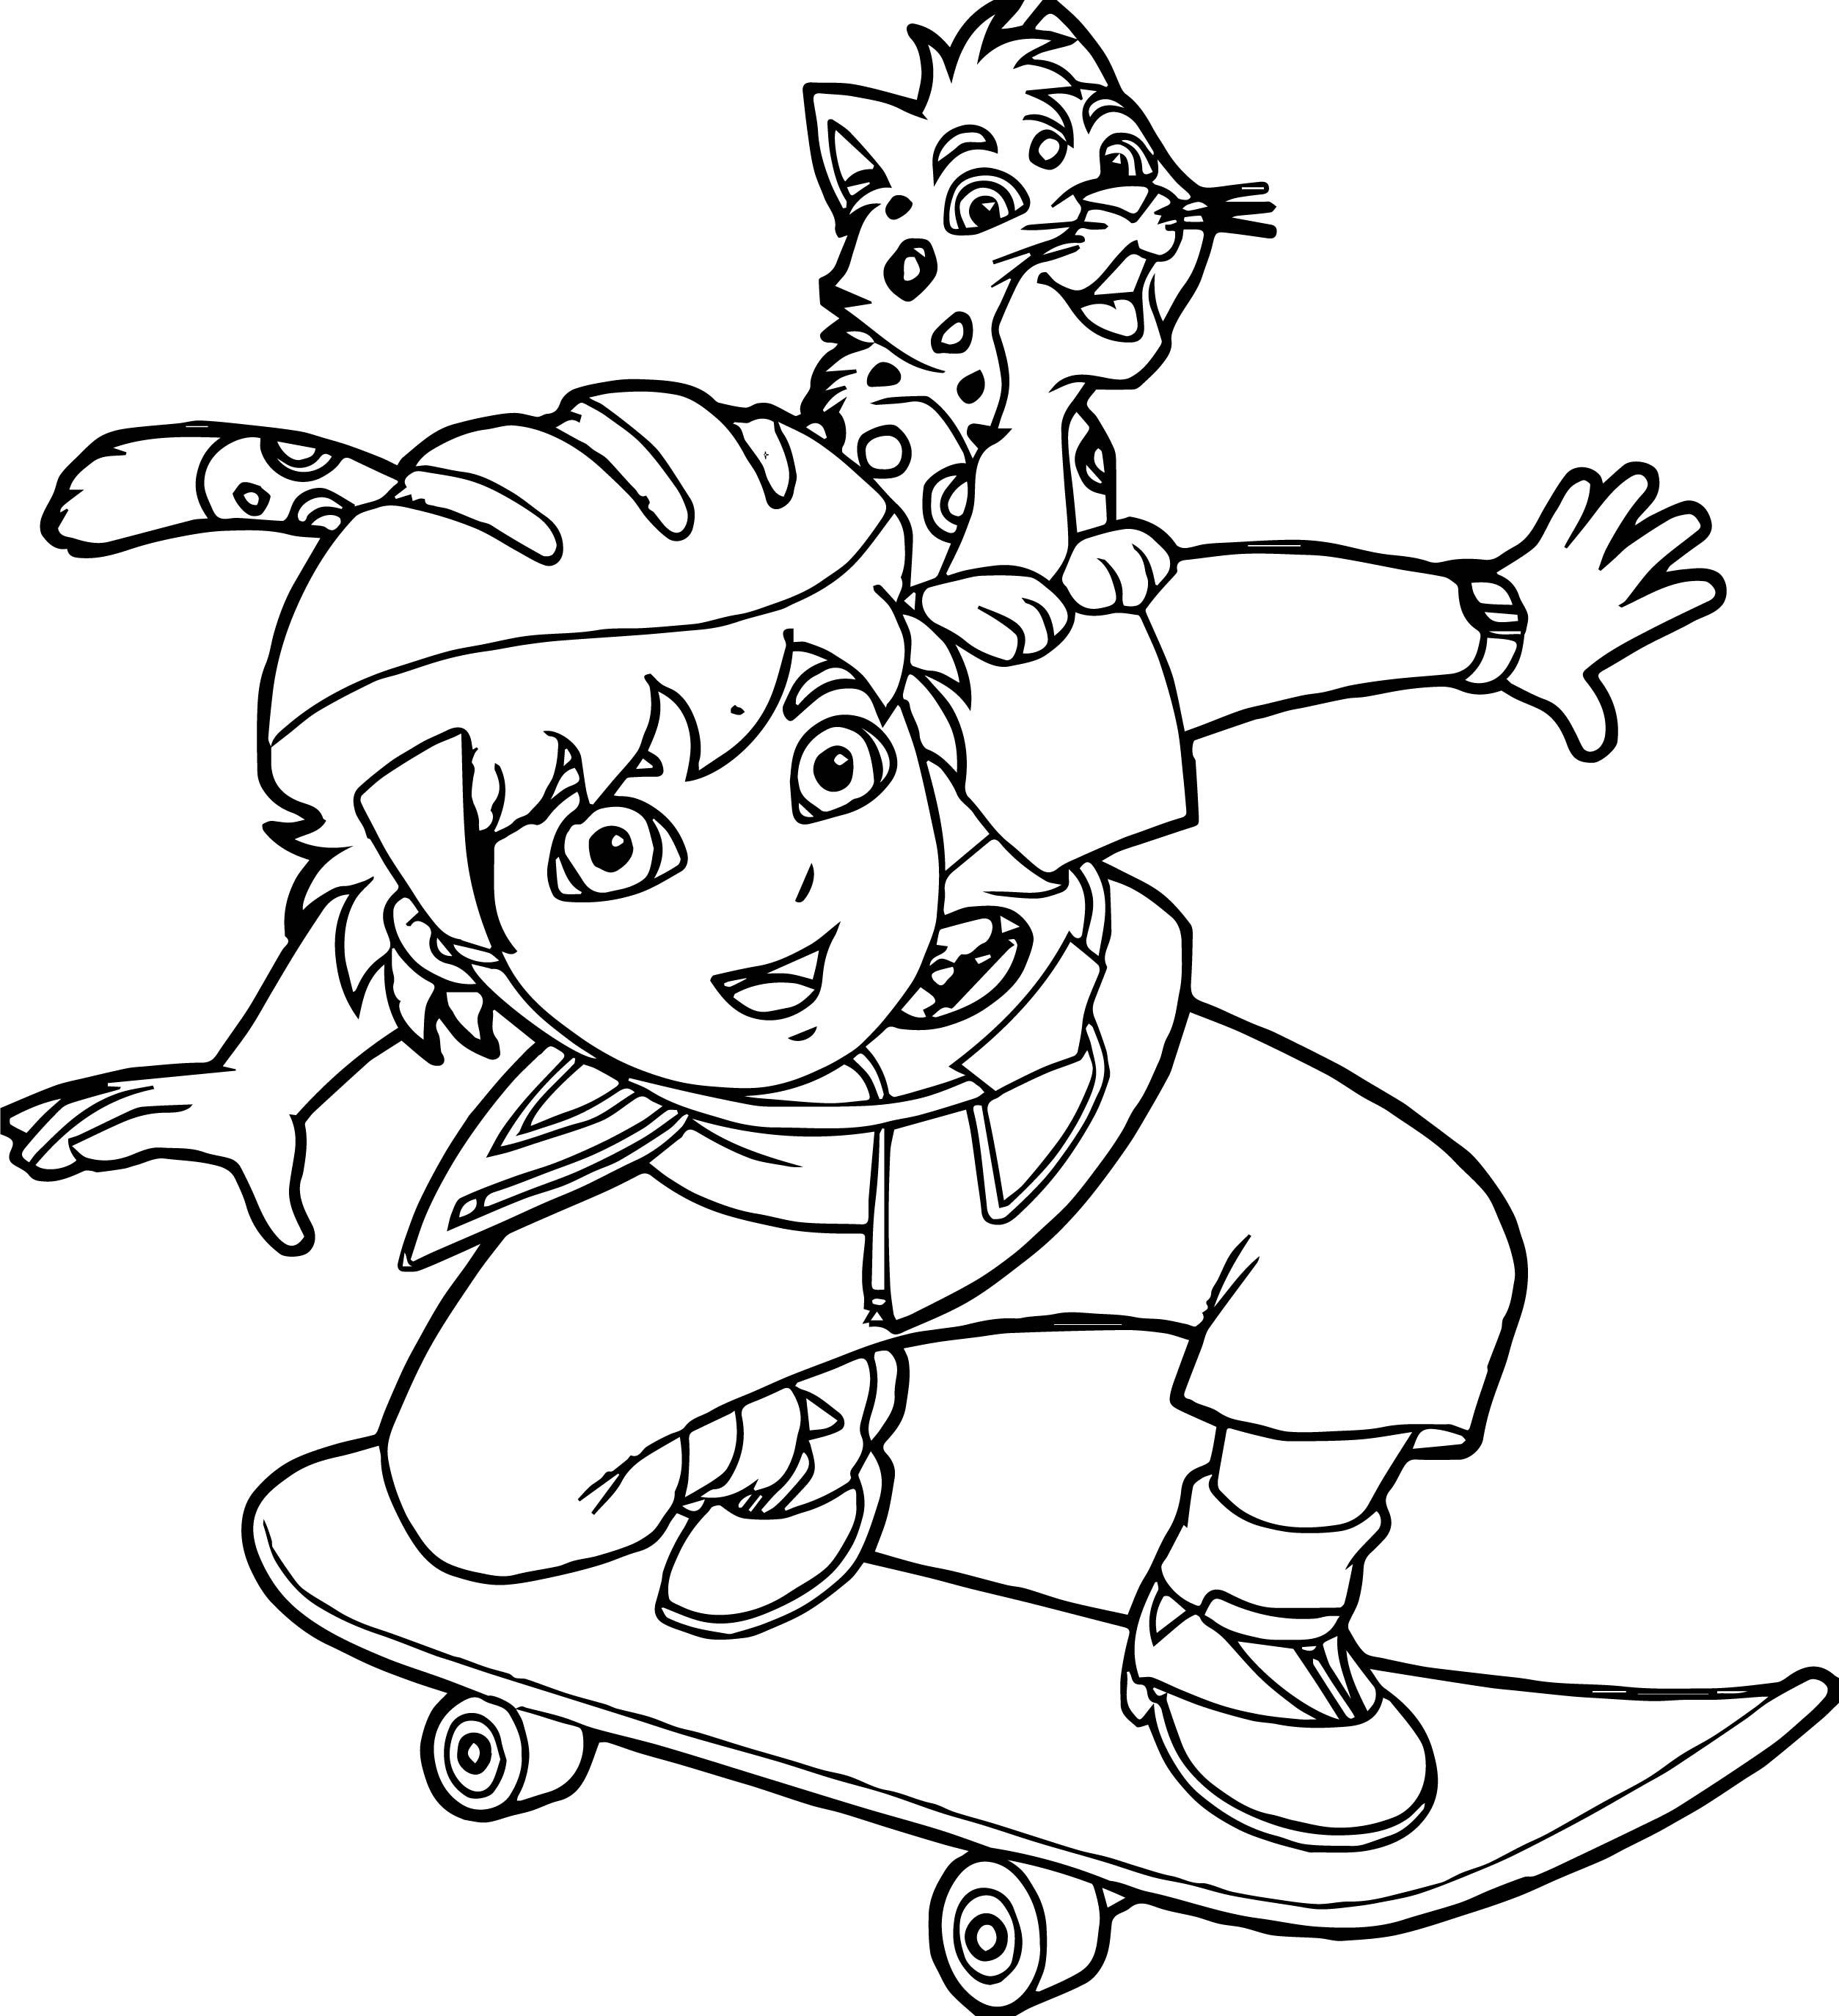 Awesome Go Diego Go And Lion Skate Coloring Page Coloring Pages